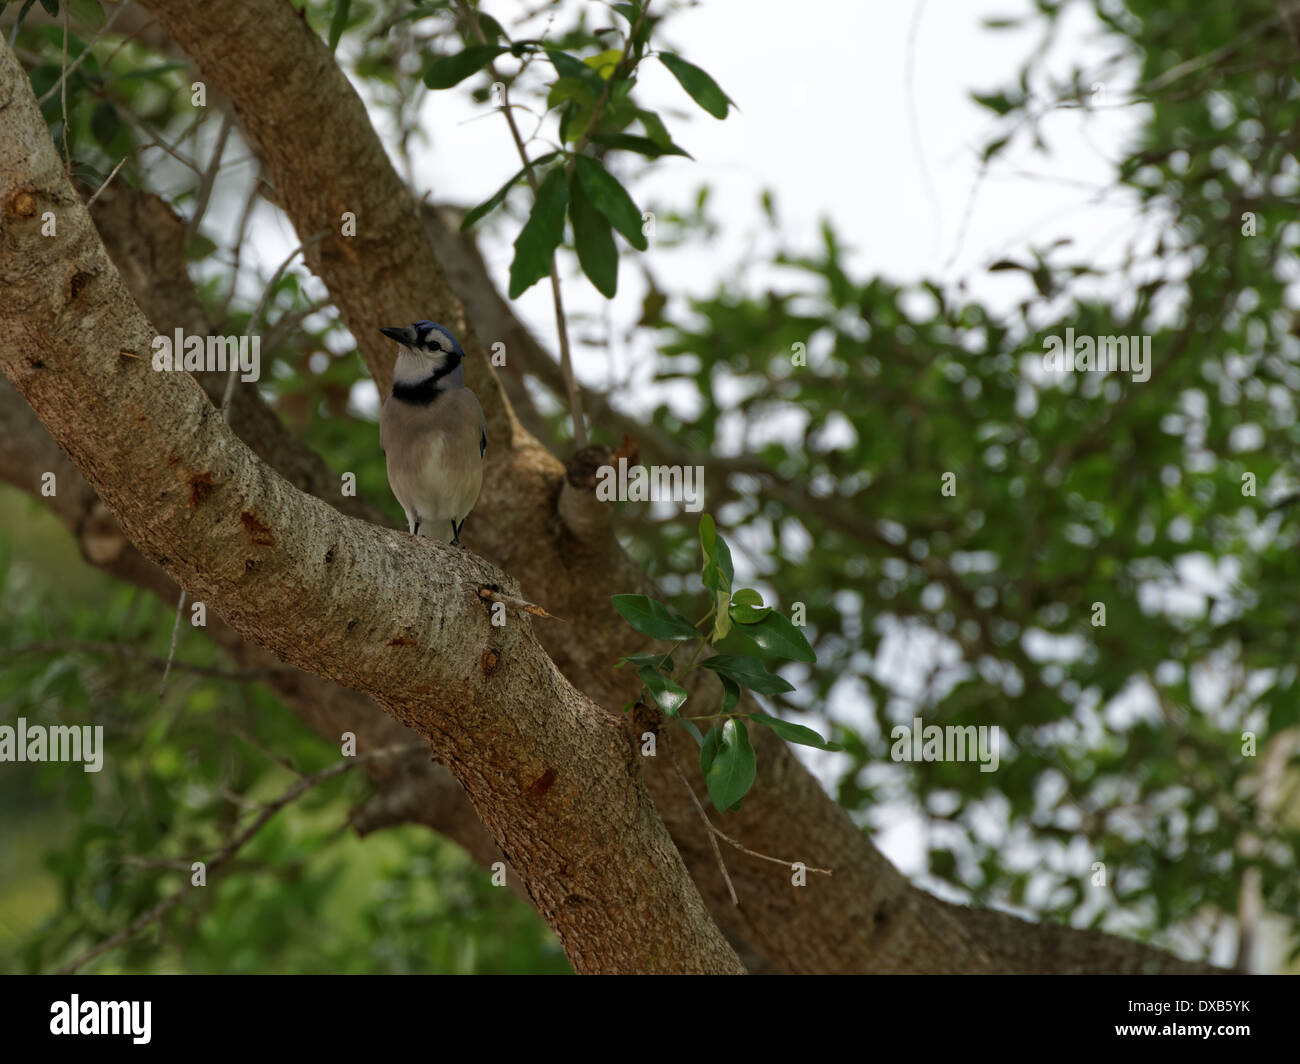 Blue Jay up in a tree, head tilted to the side, considering camera - Stock Image